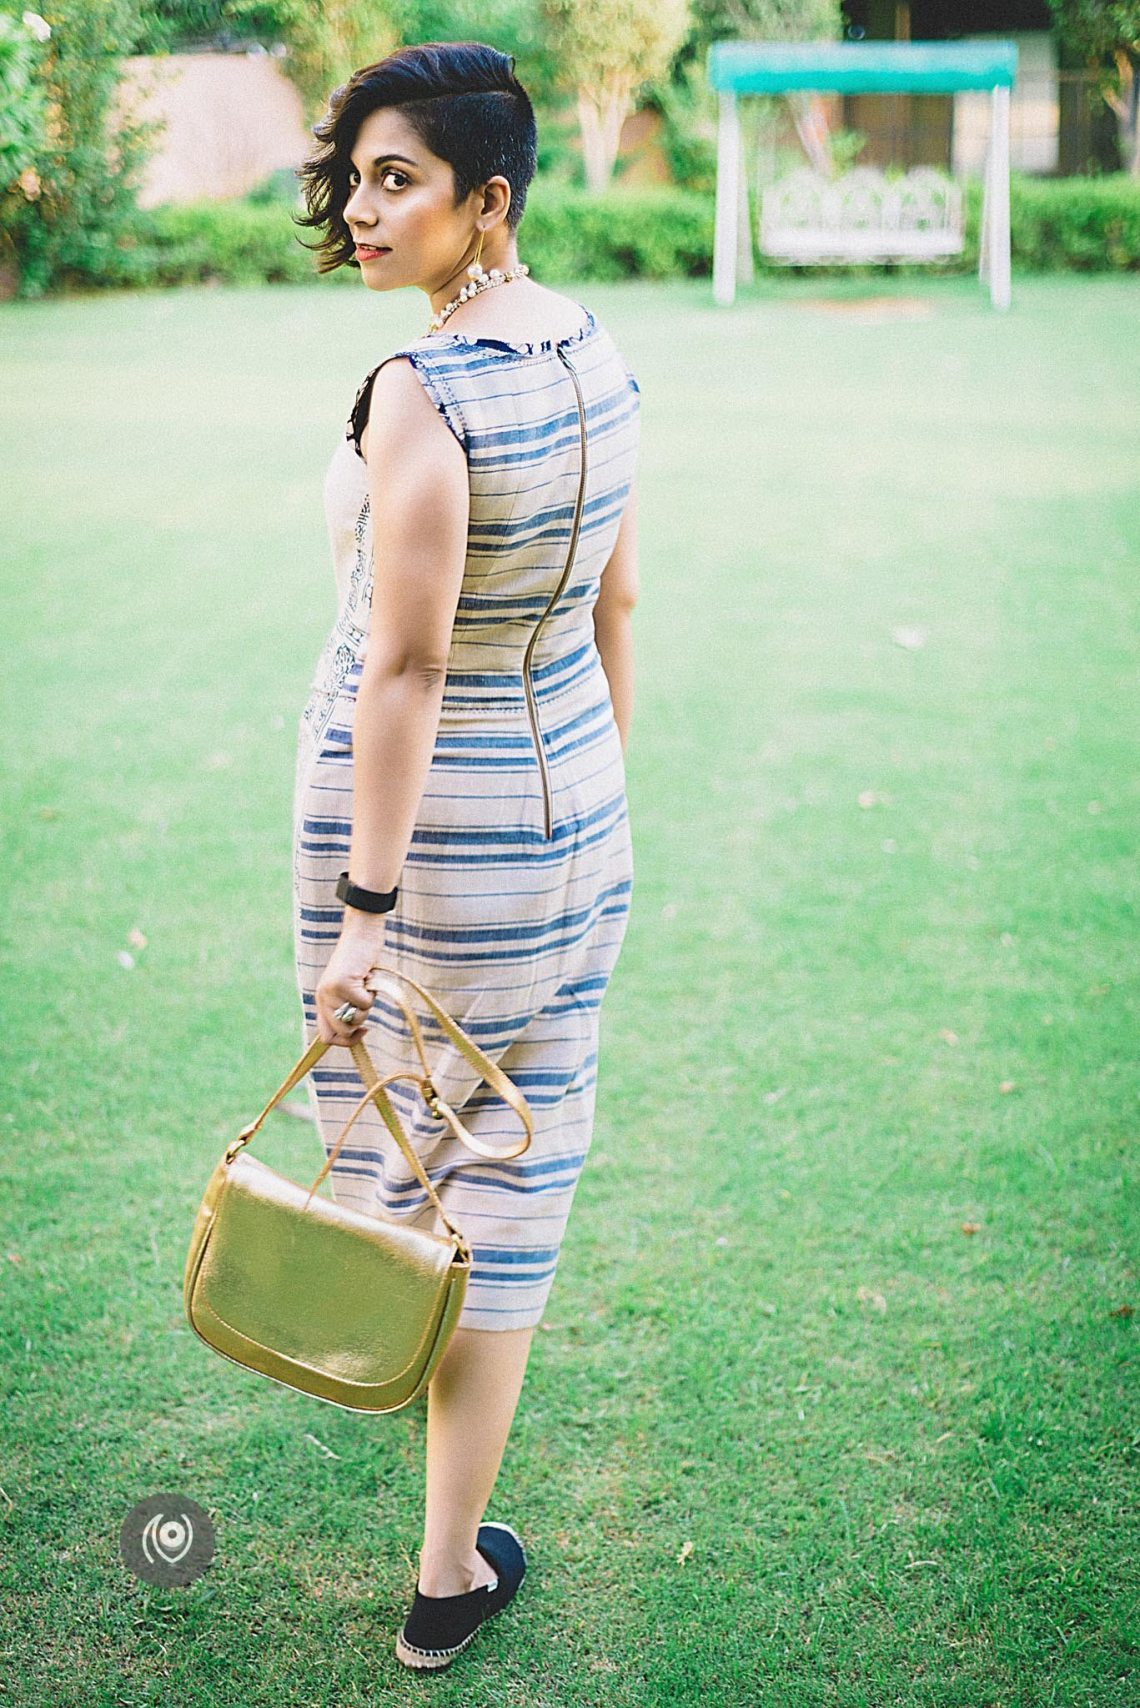 Naina.co-Raconteuse-Visuelle-Photographer-Blogger-Storyteller-Luxury-Lifestyle-CoverUp-Mi-UrvashiKaur-Risa-05